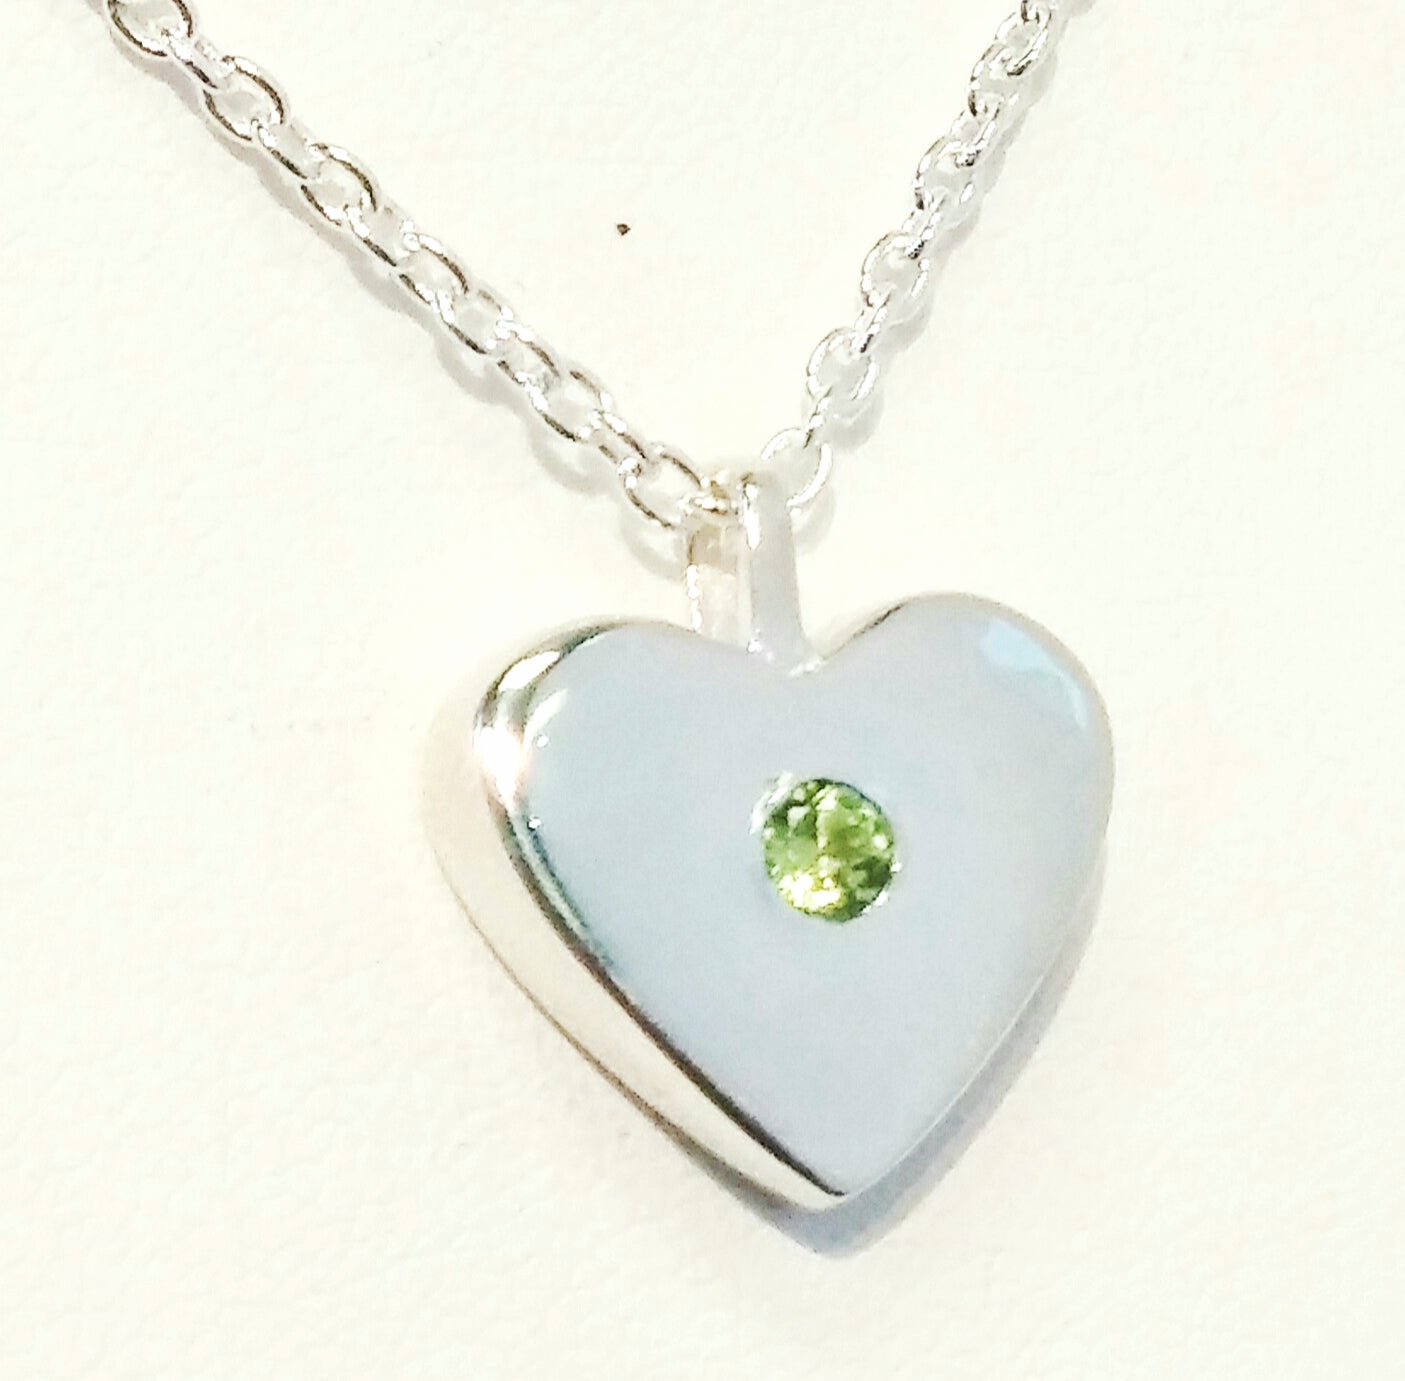 Heart Lock pendant